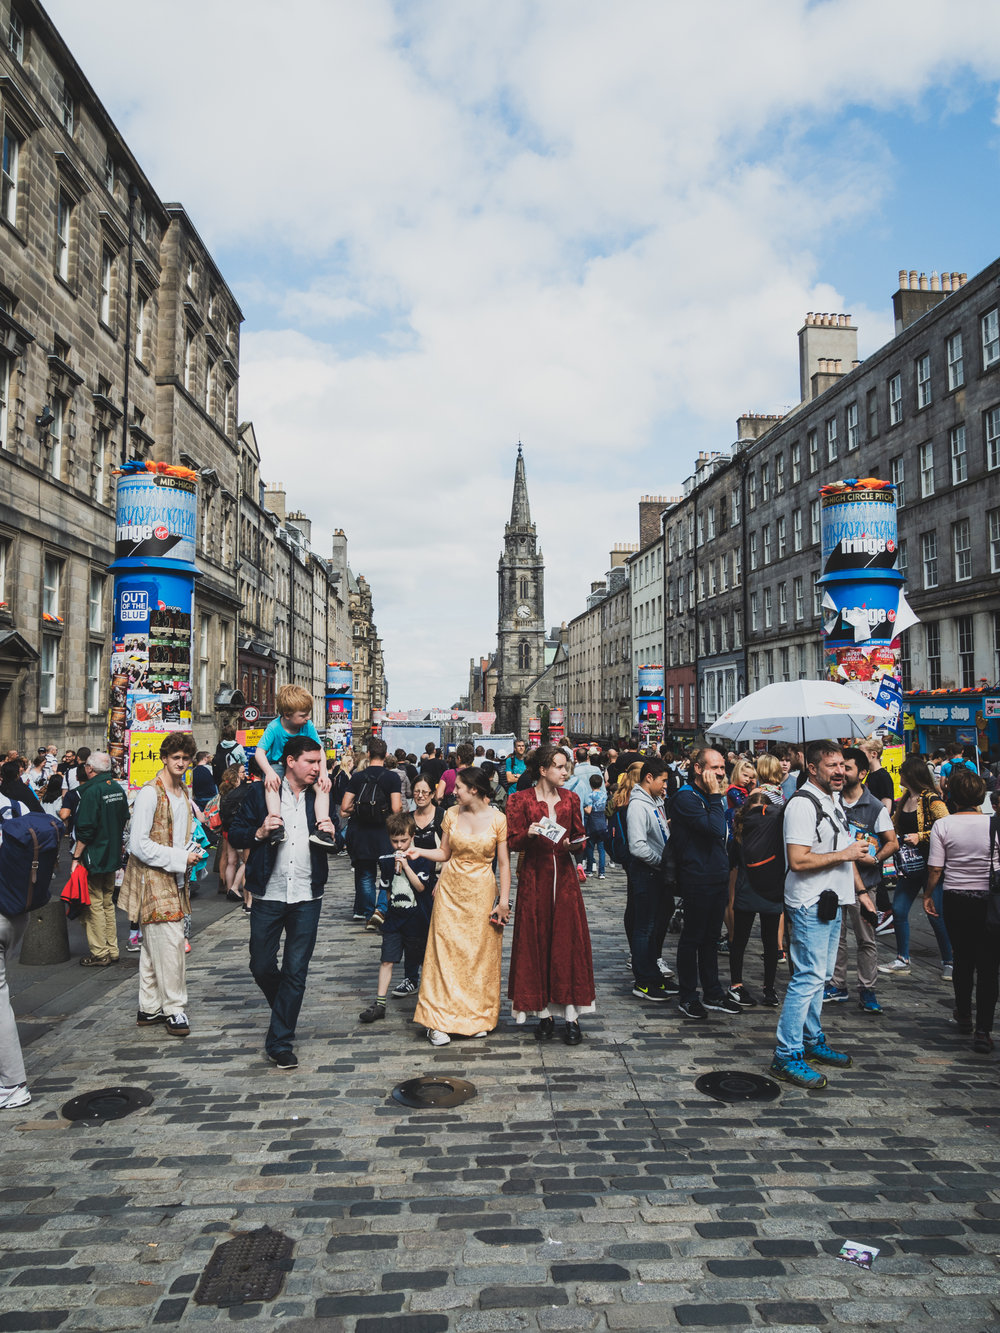 EdFringe Festival through my lens